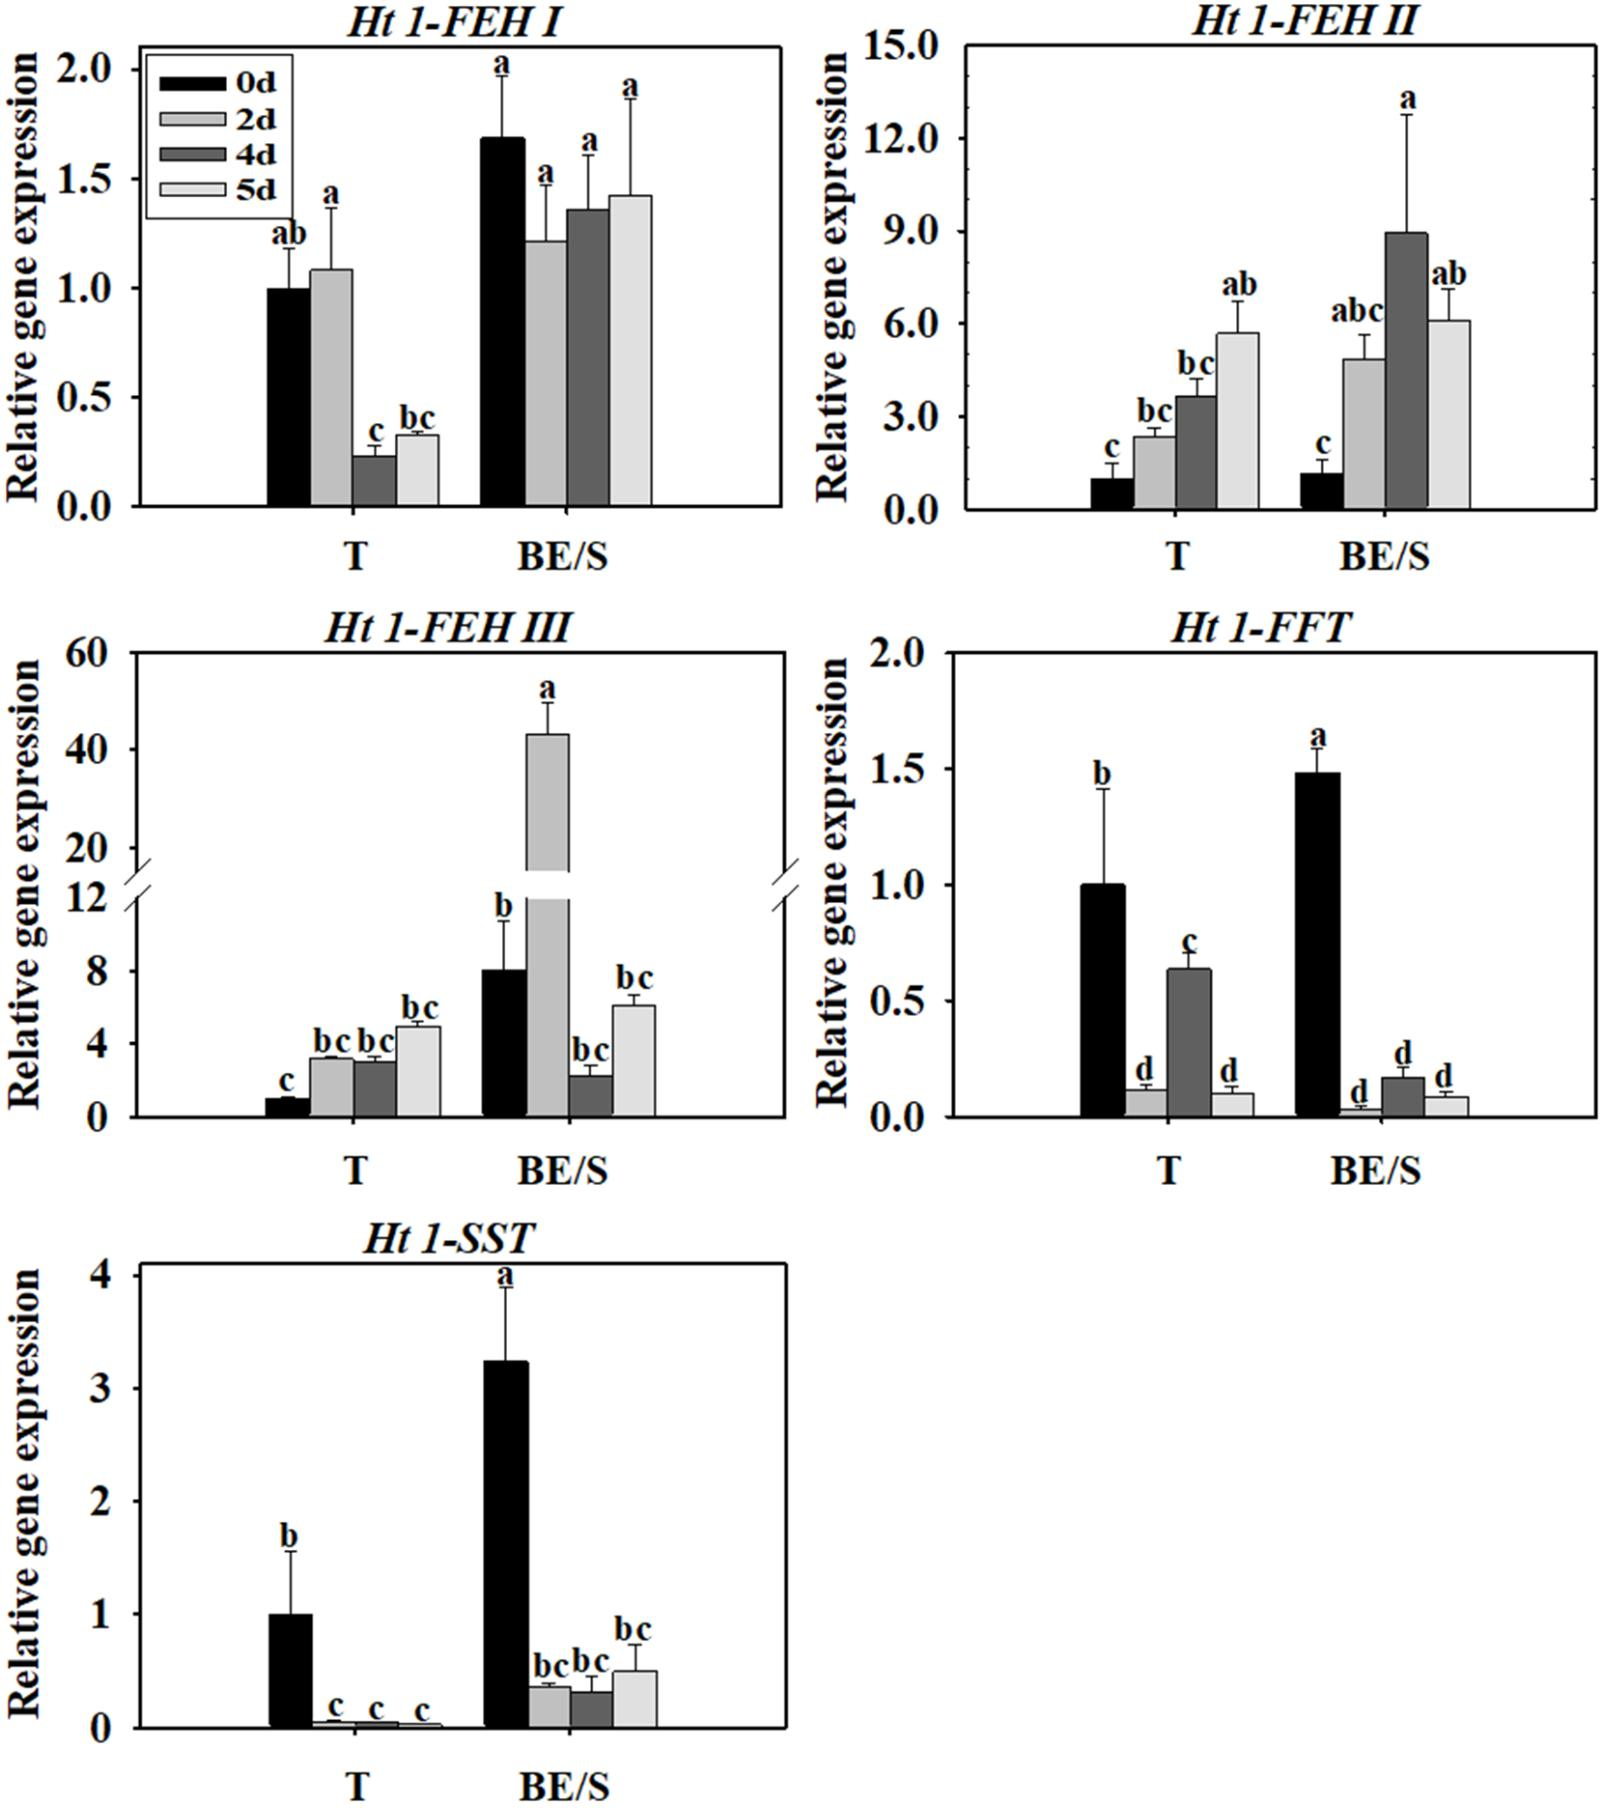 Frontiers | Characterization of Fructan Metabolism During Jerusalem